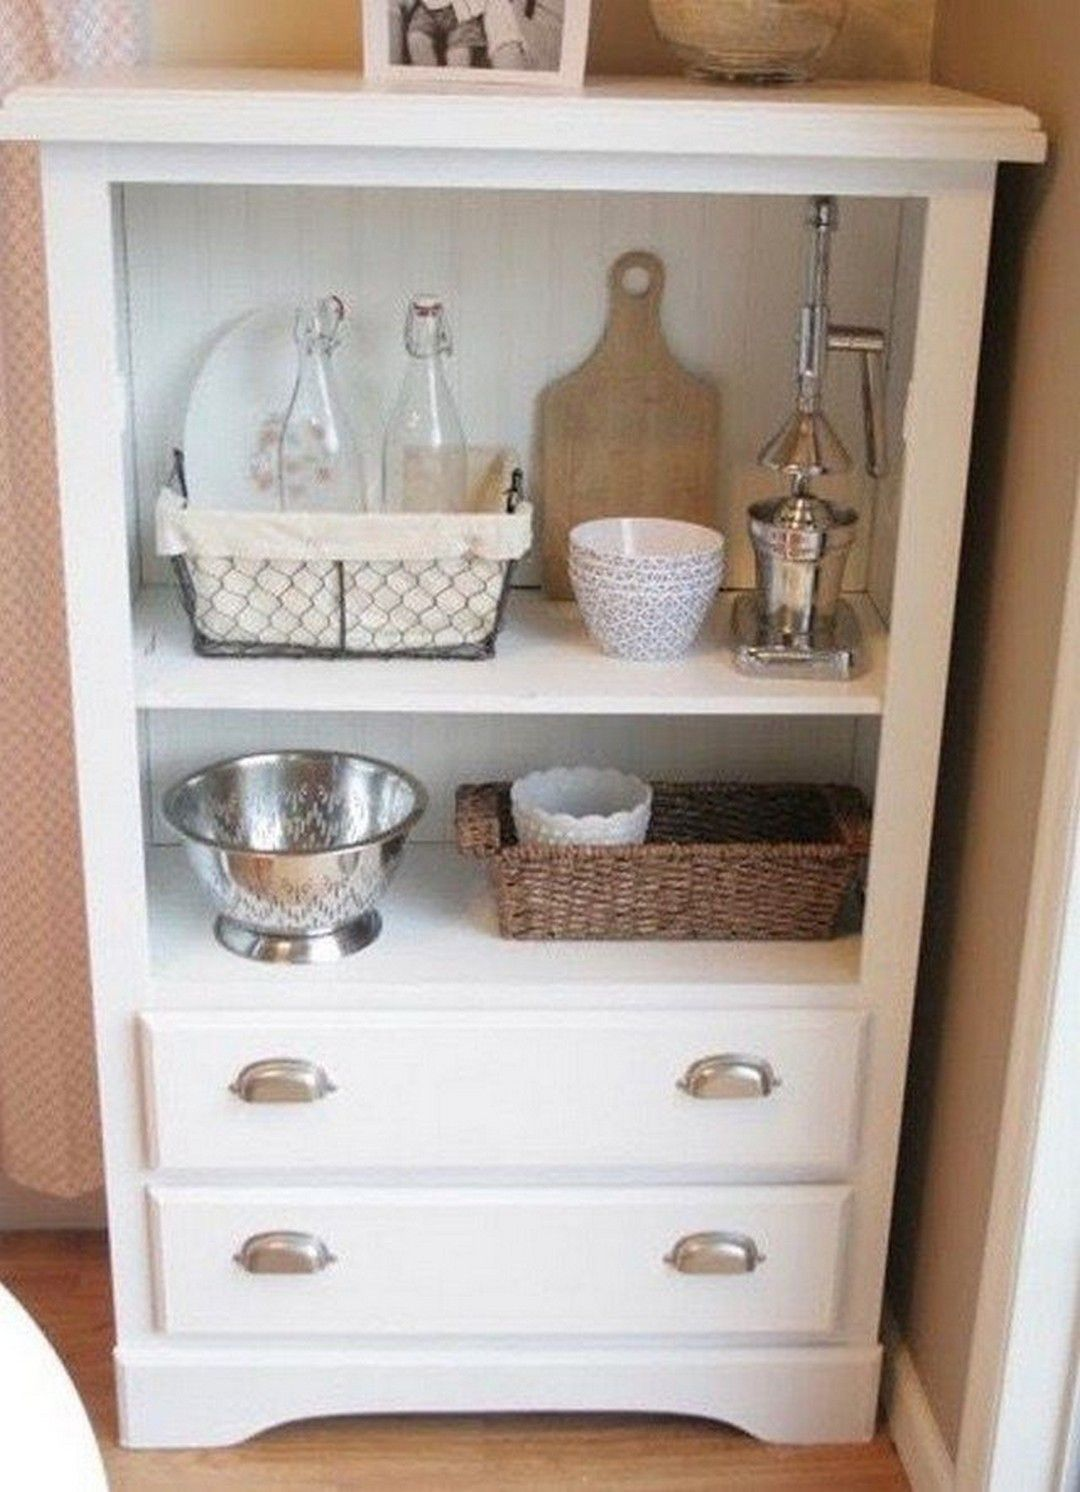 14 repurposed furniture projects in time for father s day on fantastic repurposed furniture projects ideas in time for father s day id=66251